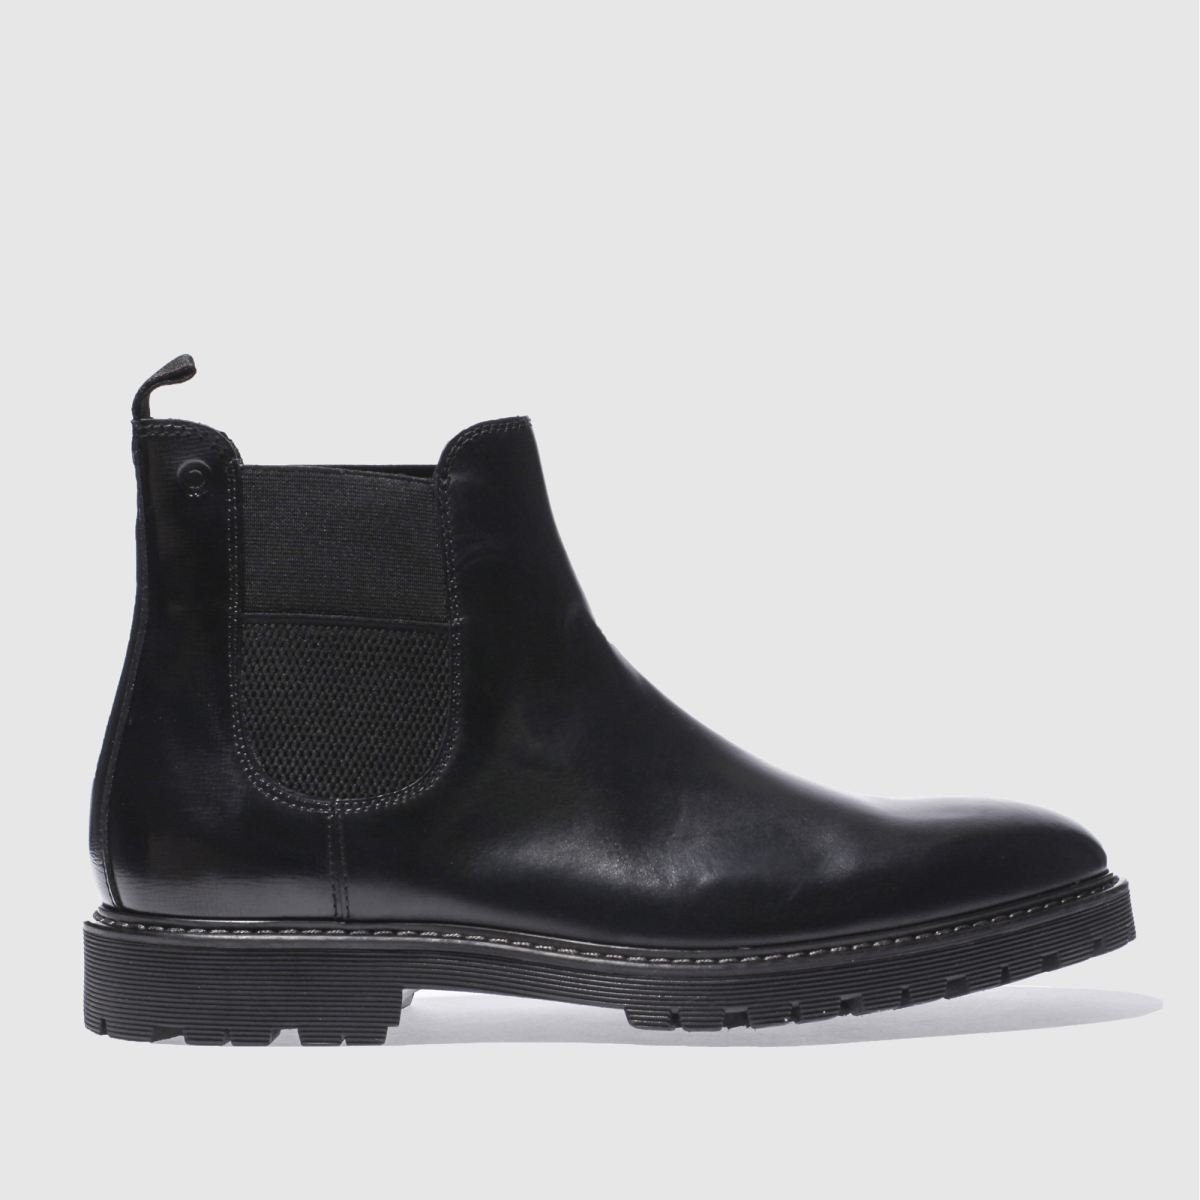 red or dead black mr callahan chelsea boots